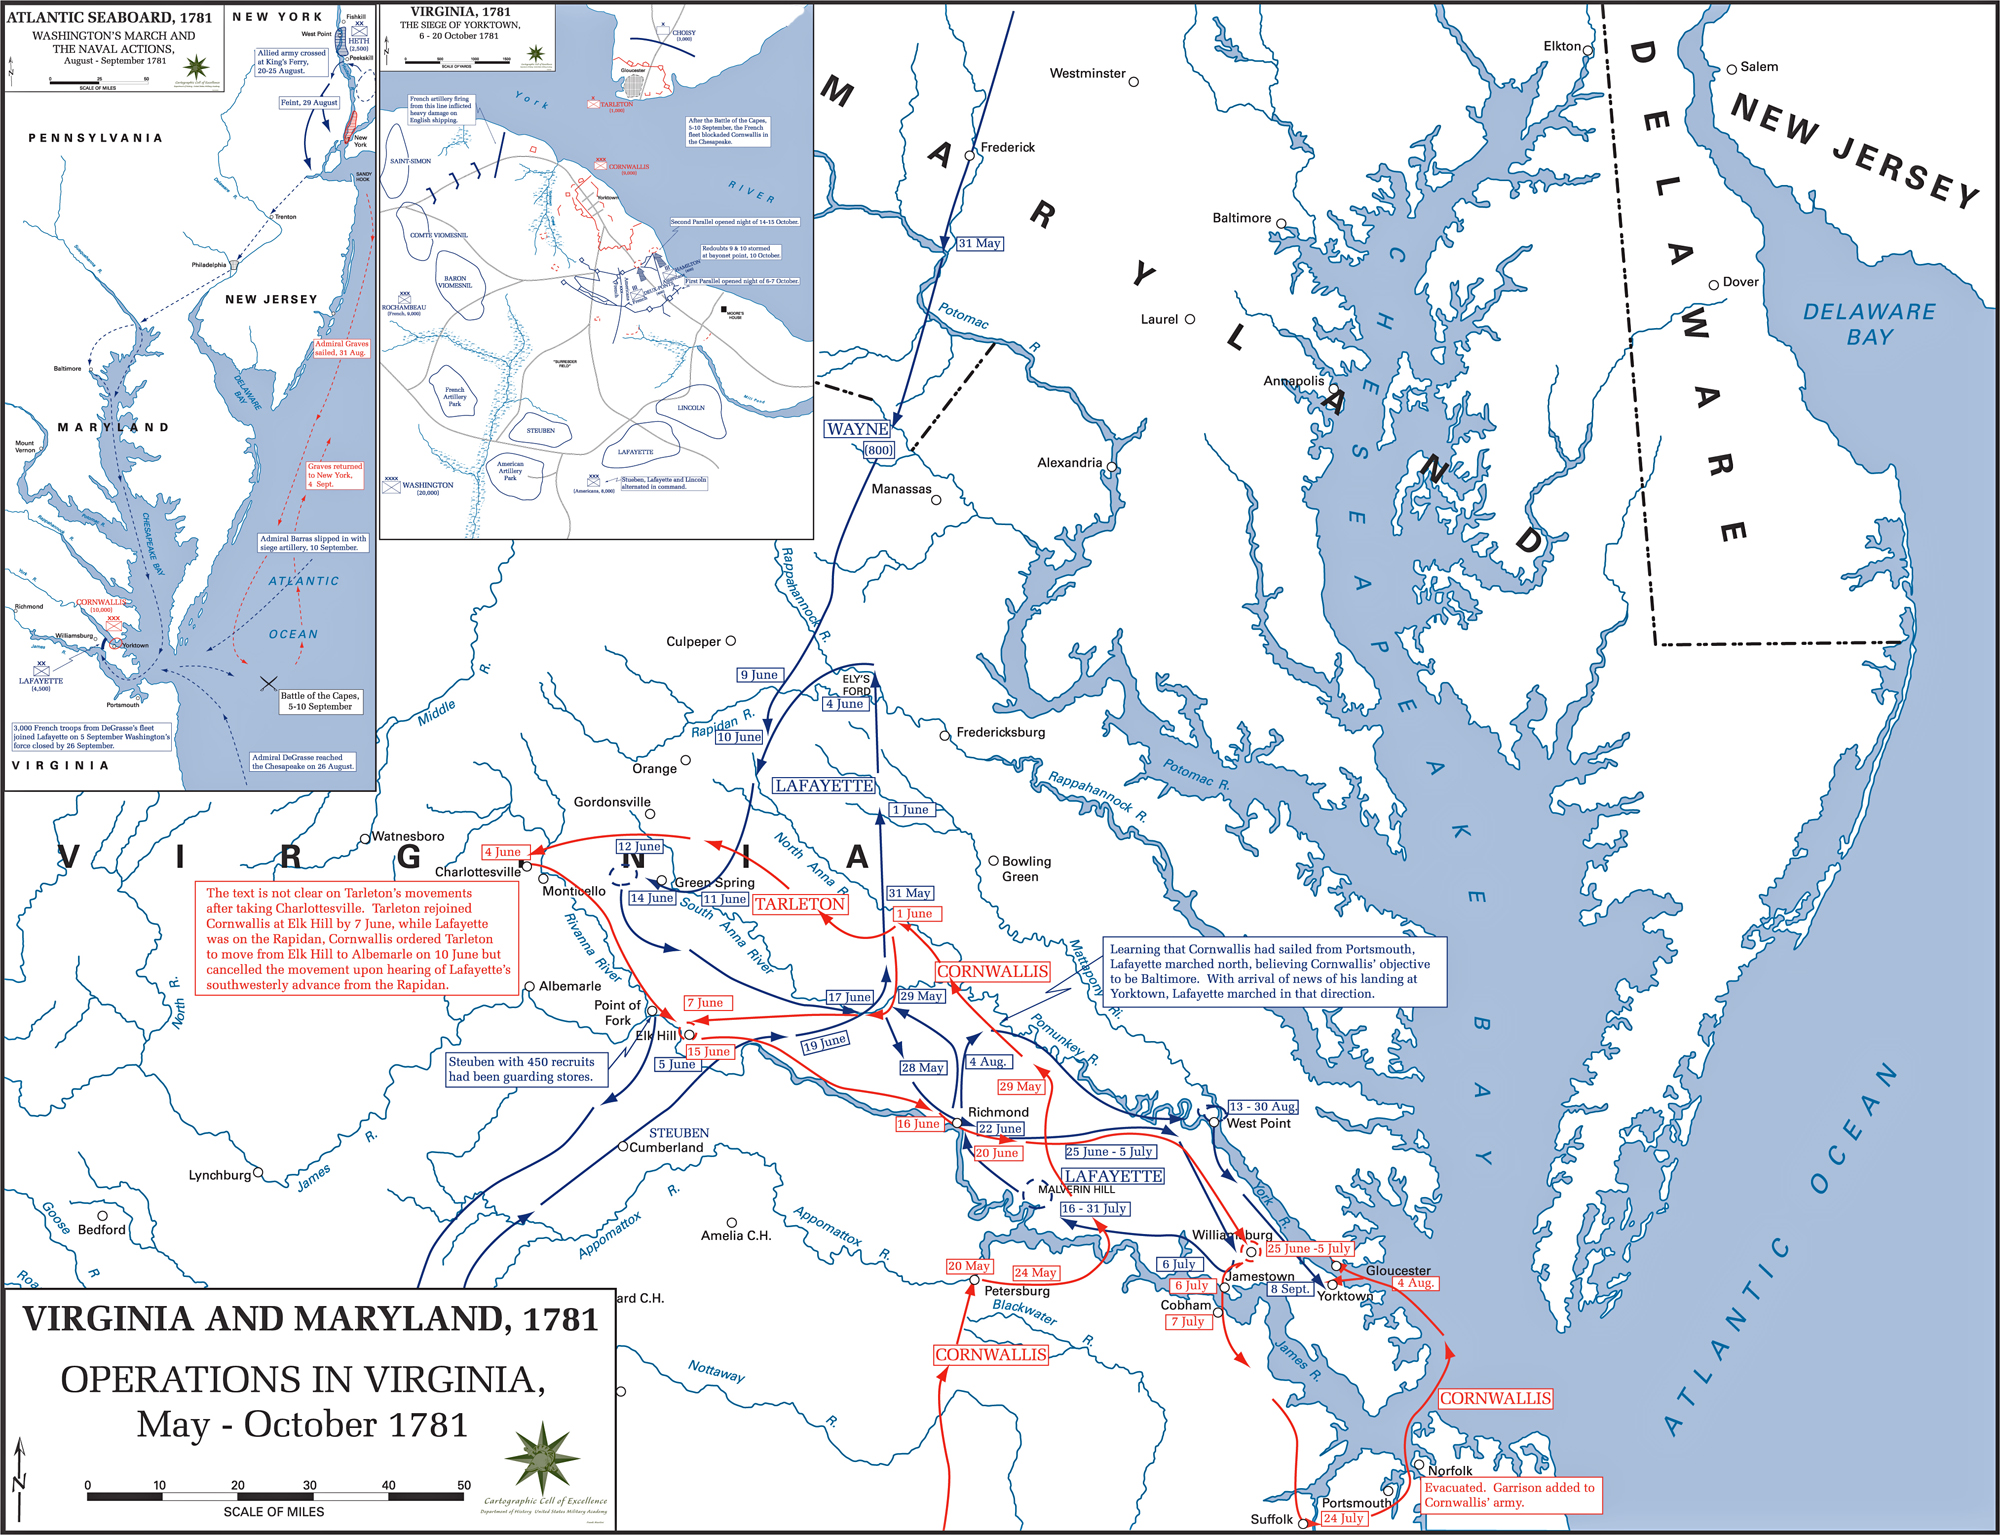 Map of the operations in virginia 1781 Vibeline